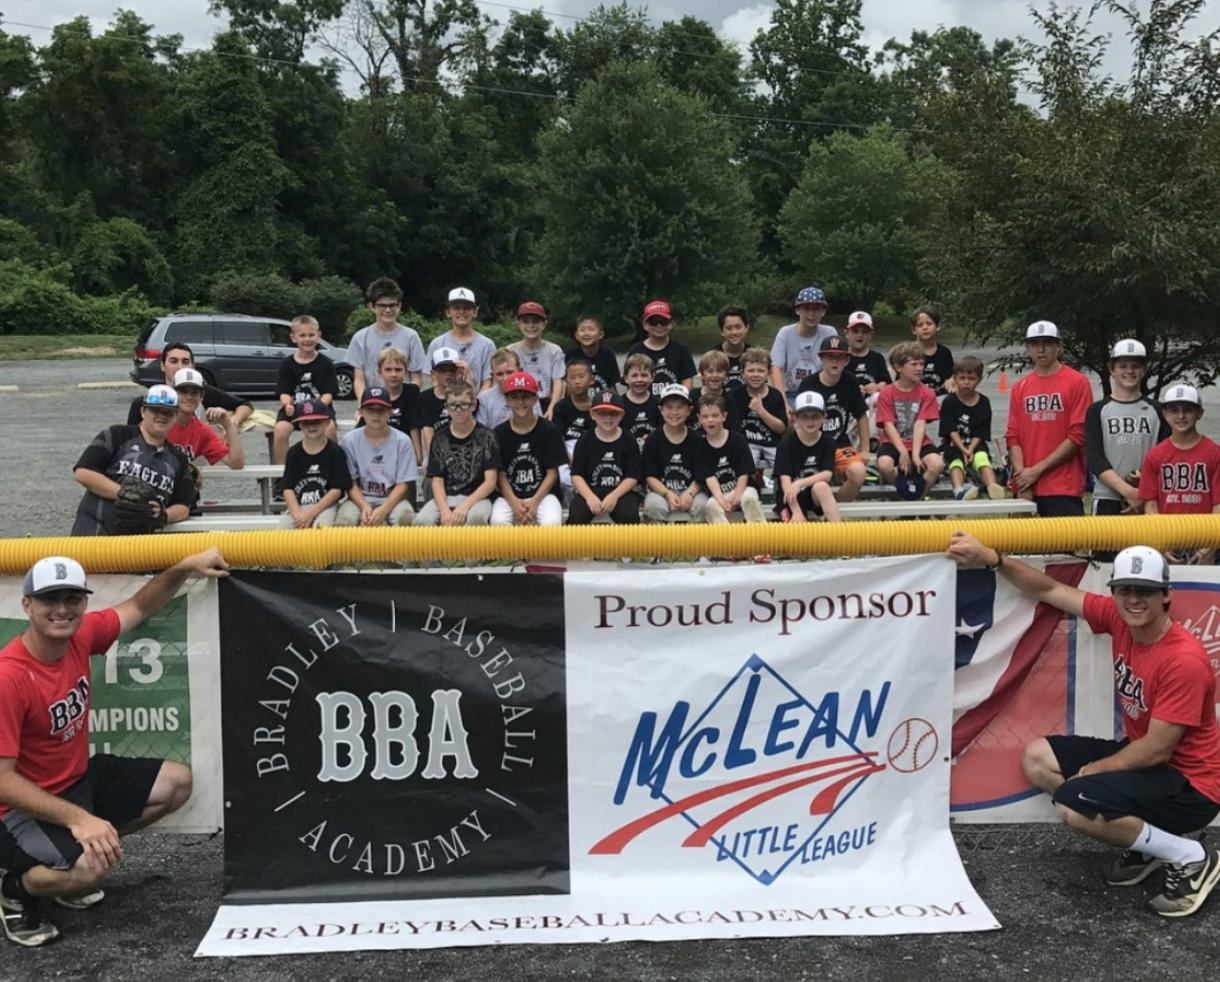 Bradley Baseball Academy Little League Camp at McLean Little League Complex